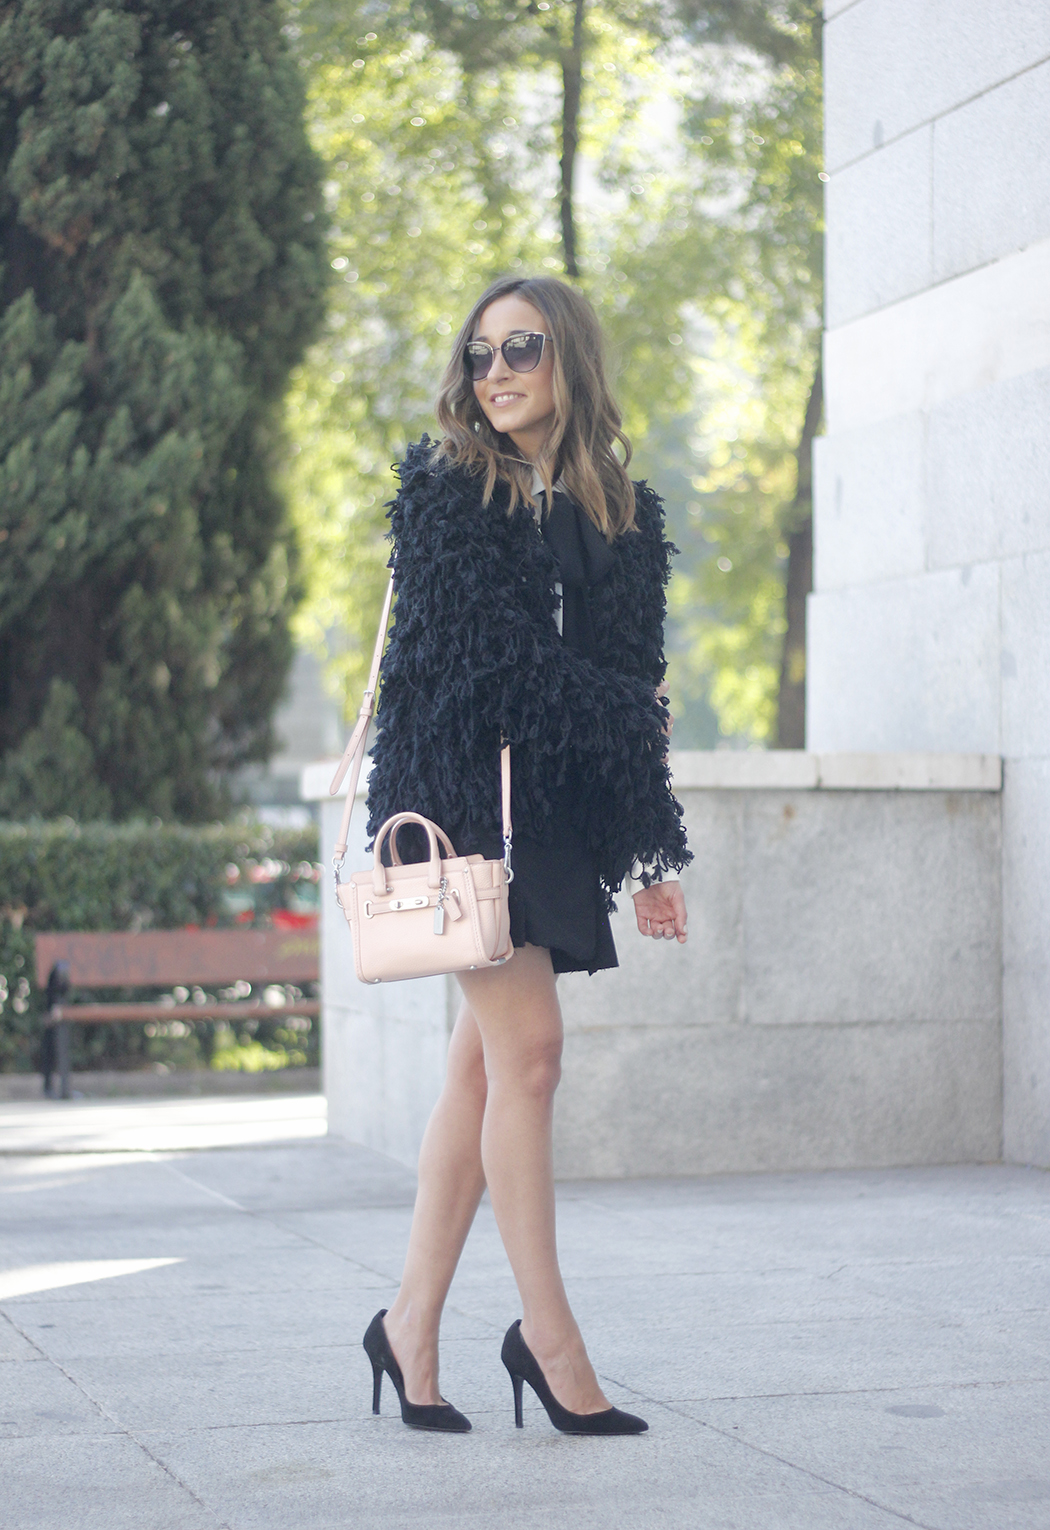 black jacket shirt with black bow coach pink bag heels outfit16